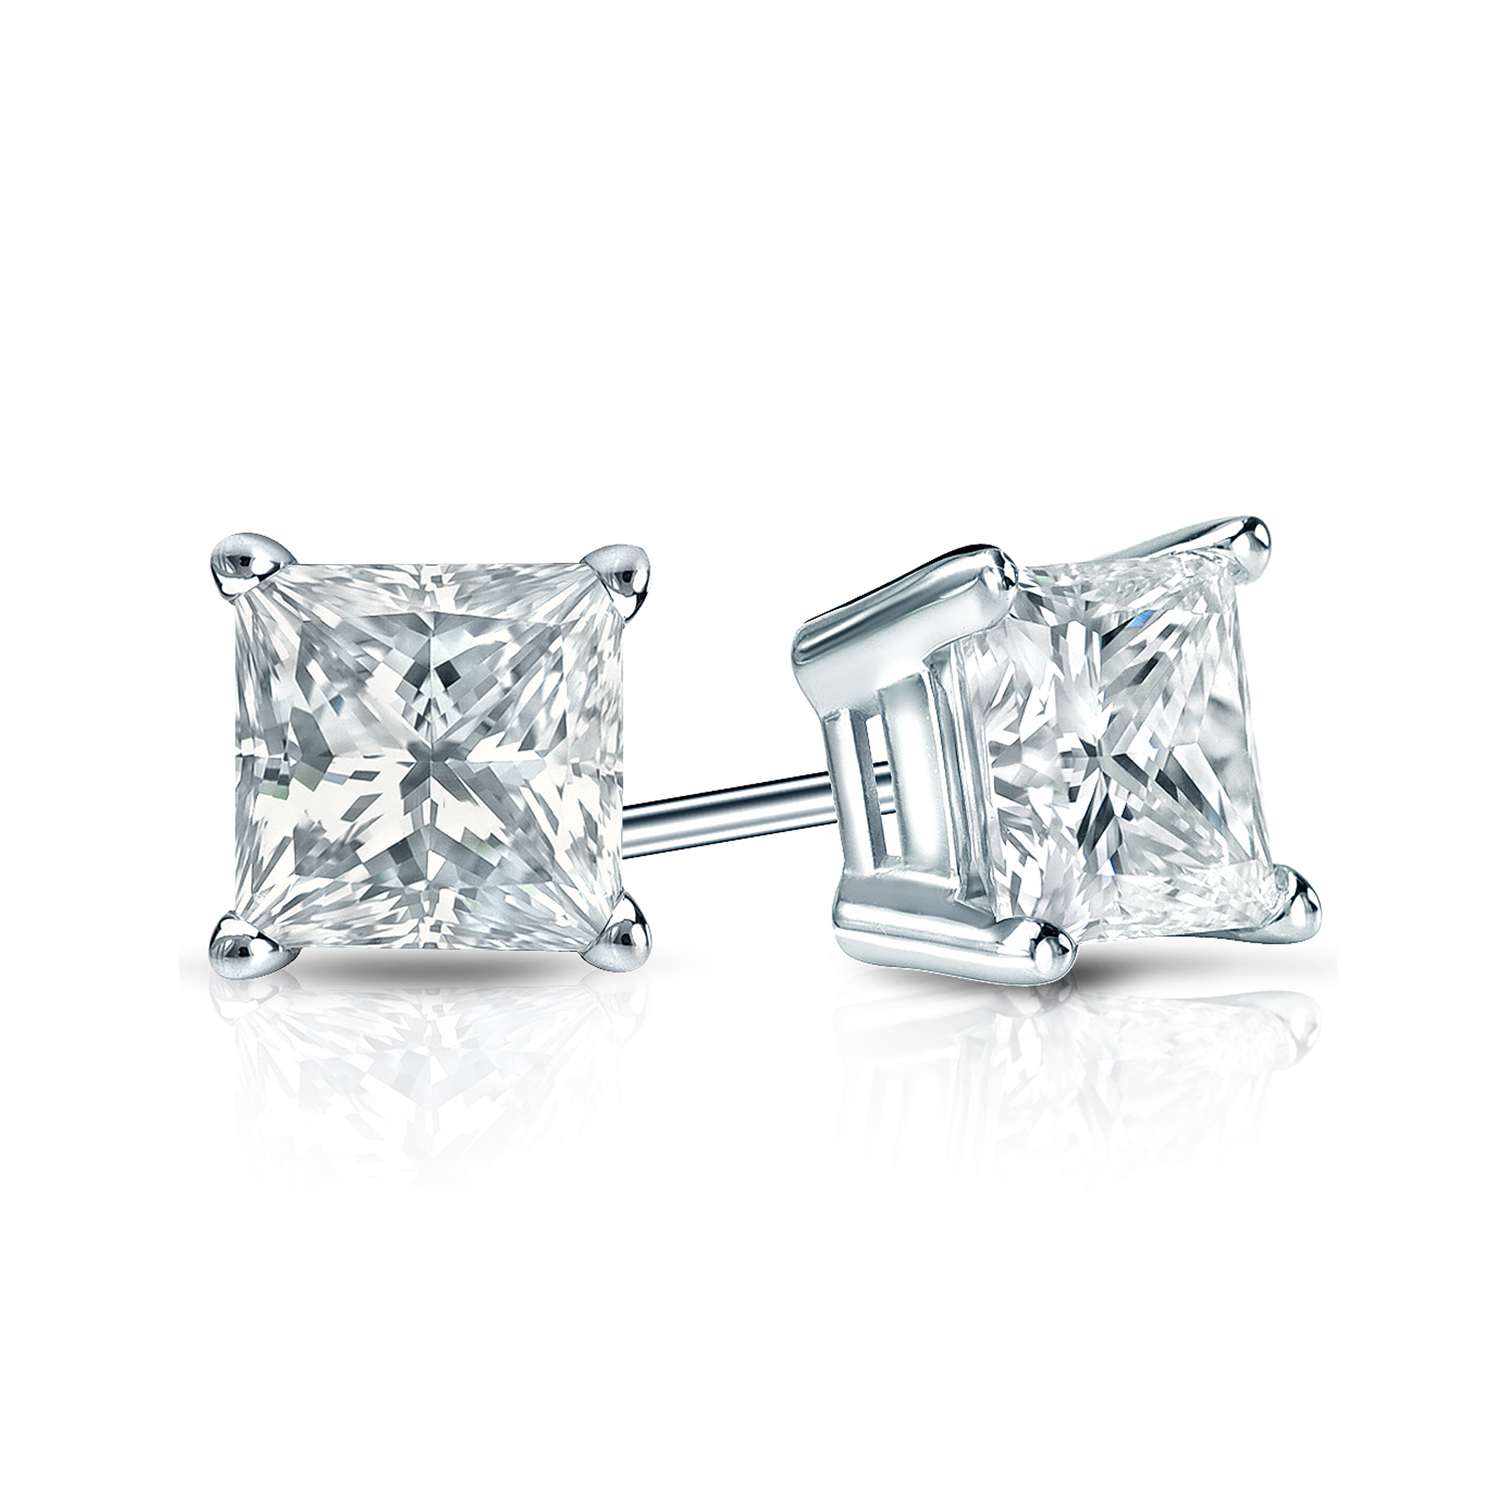 Certified 1.50 cttw Princess Diamond Stud Earrings in 14k White Gold 4-Prong Basket (G-H, SI)